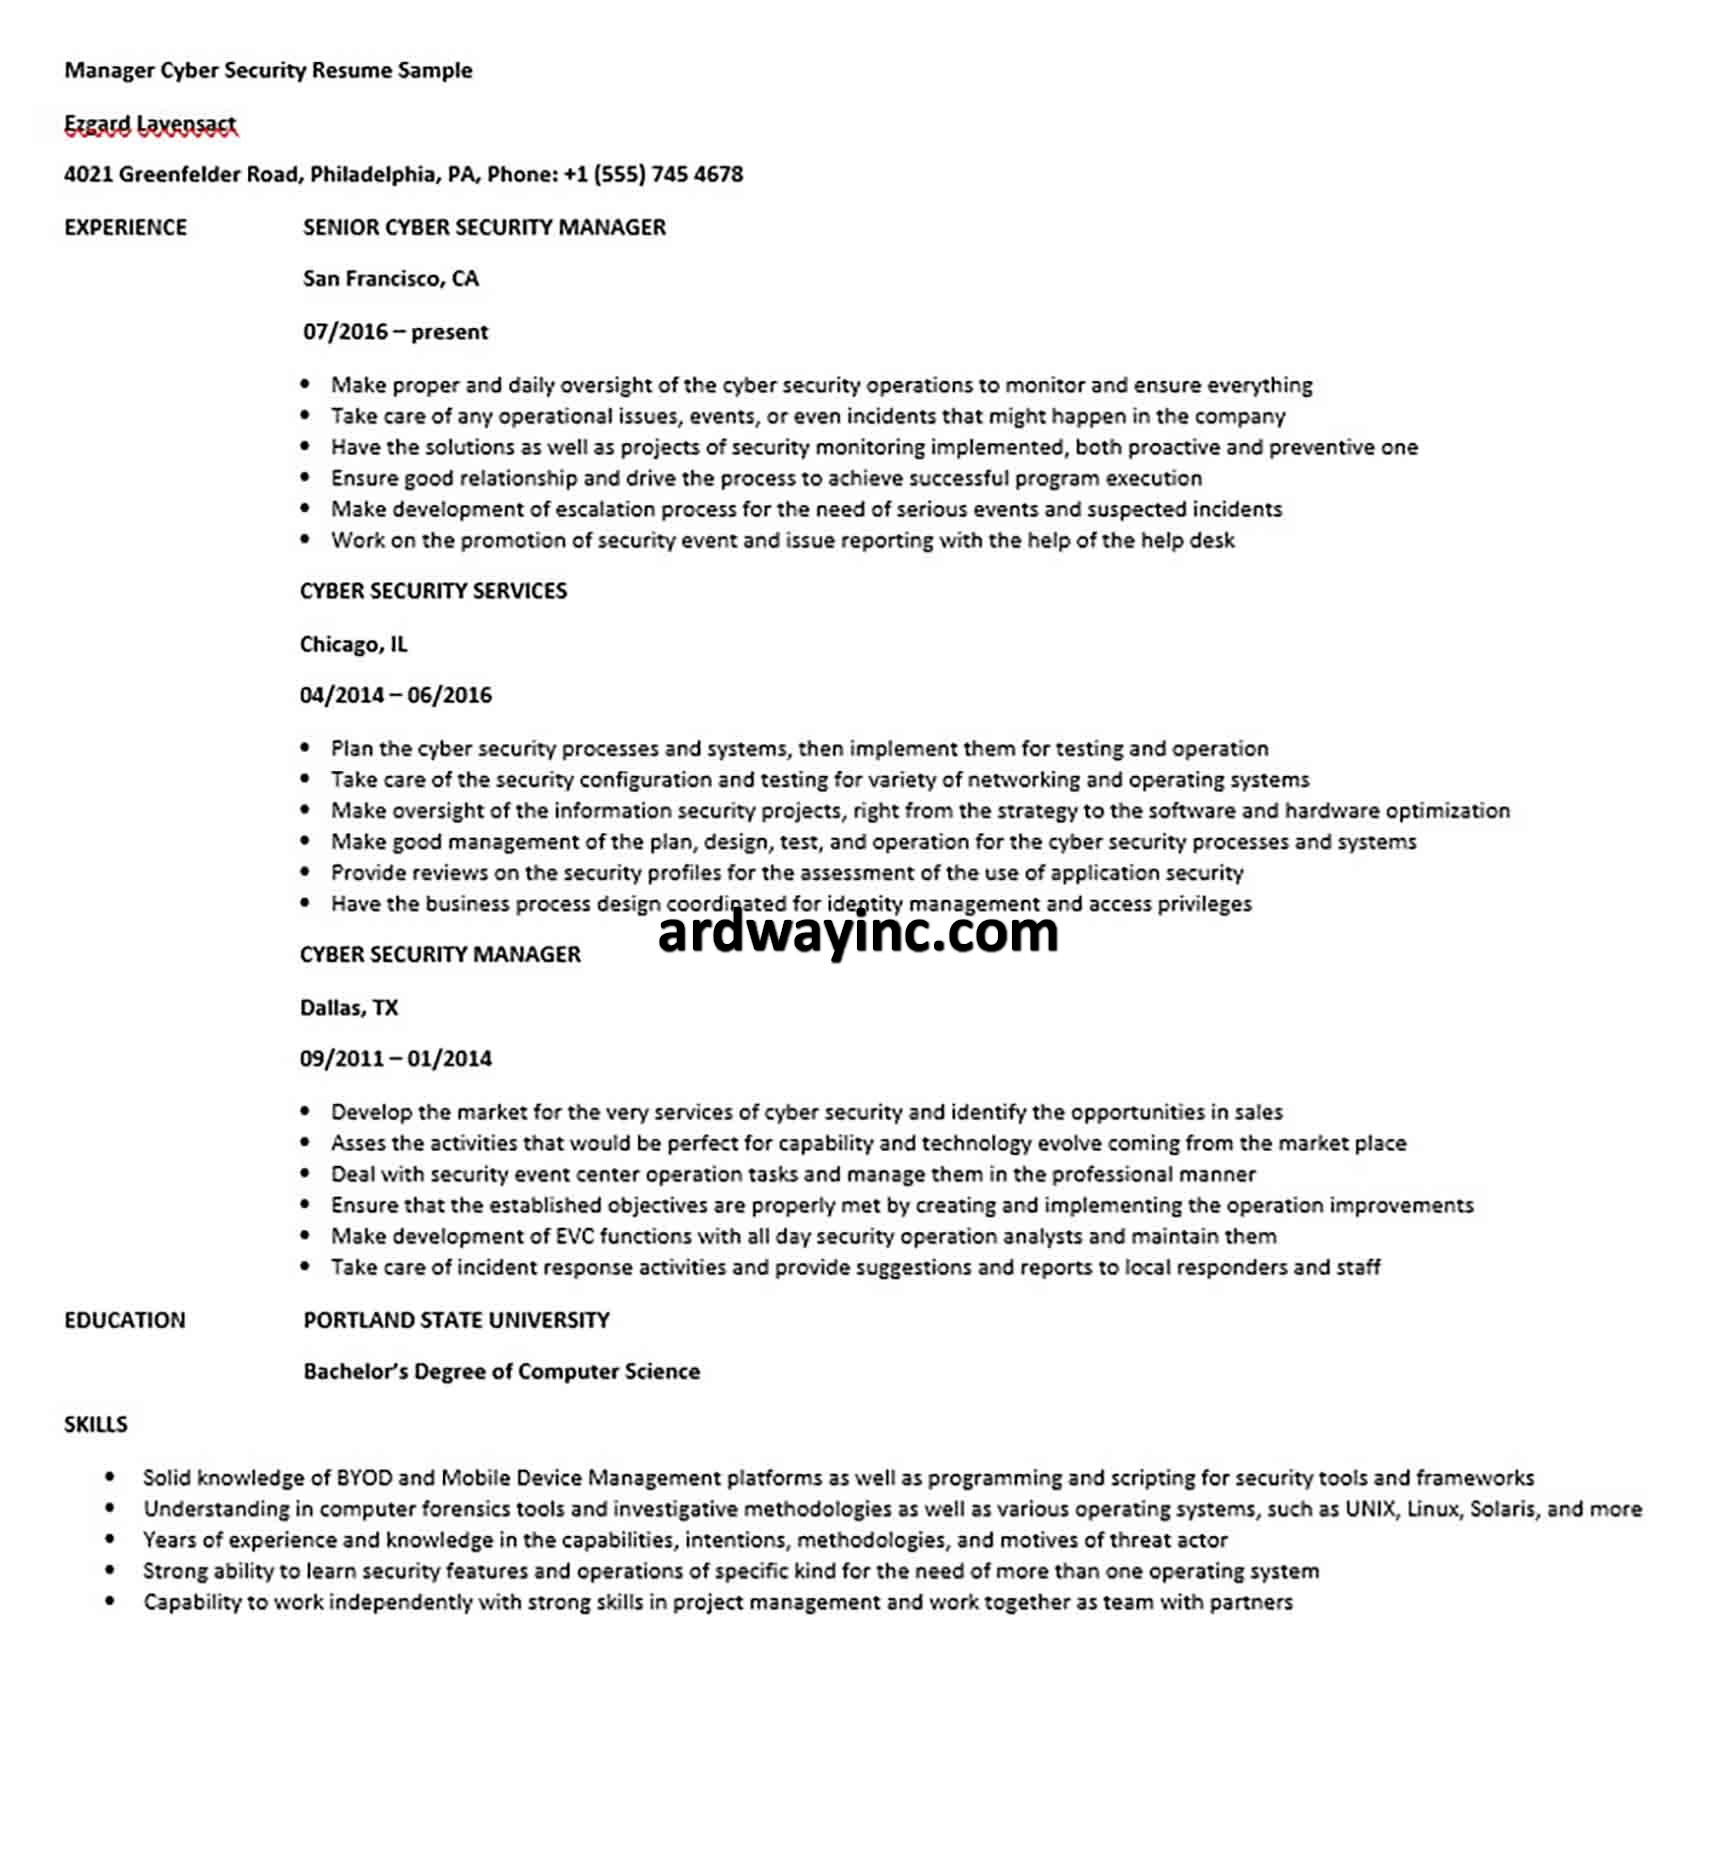 Manager Cyber Security Resume Sample